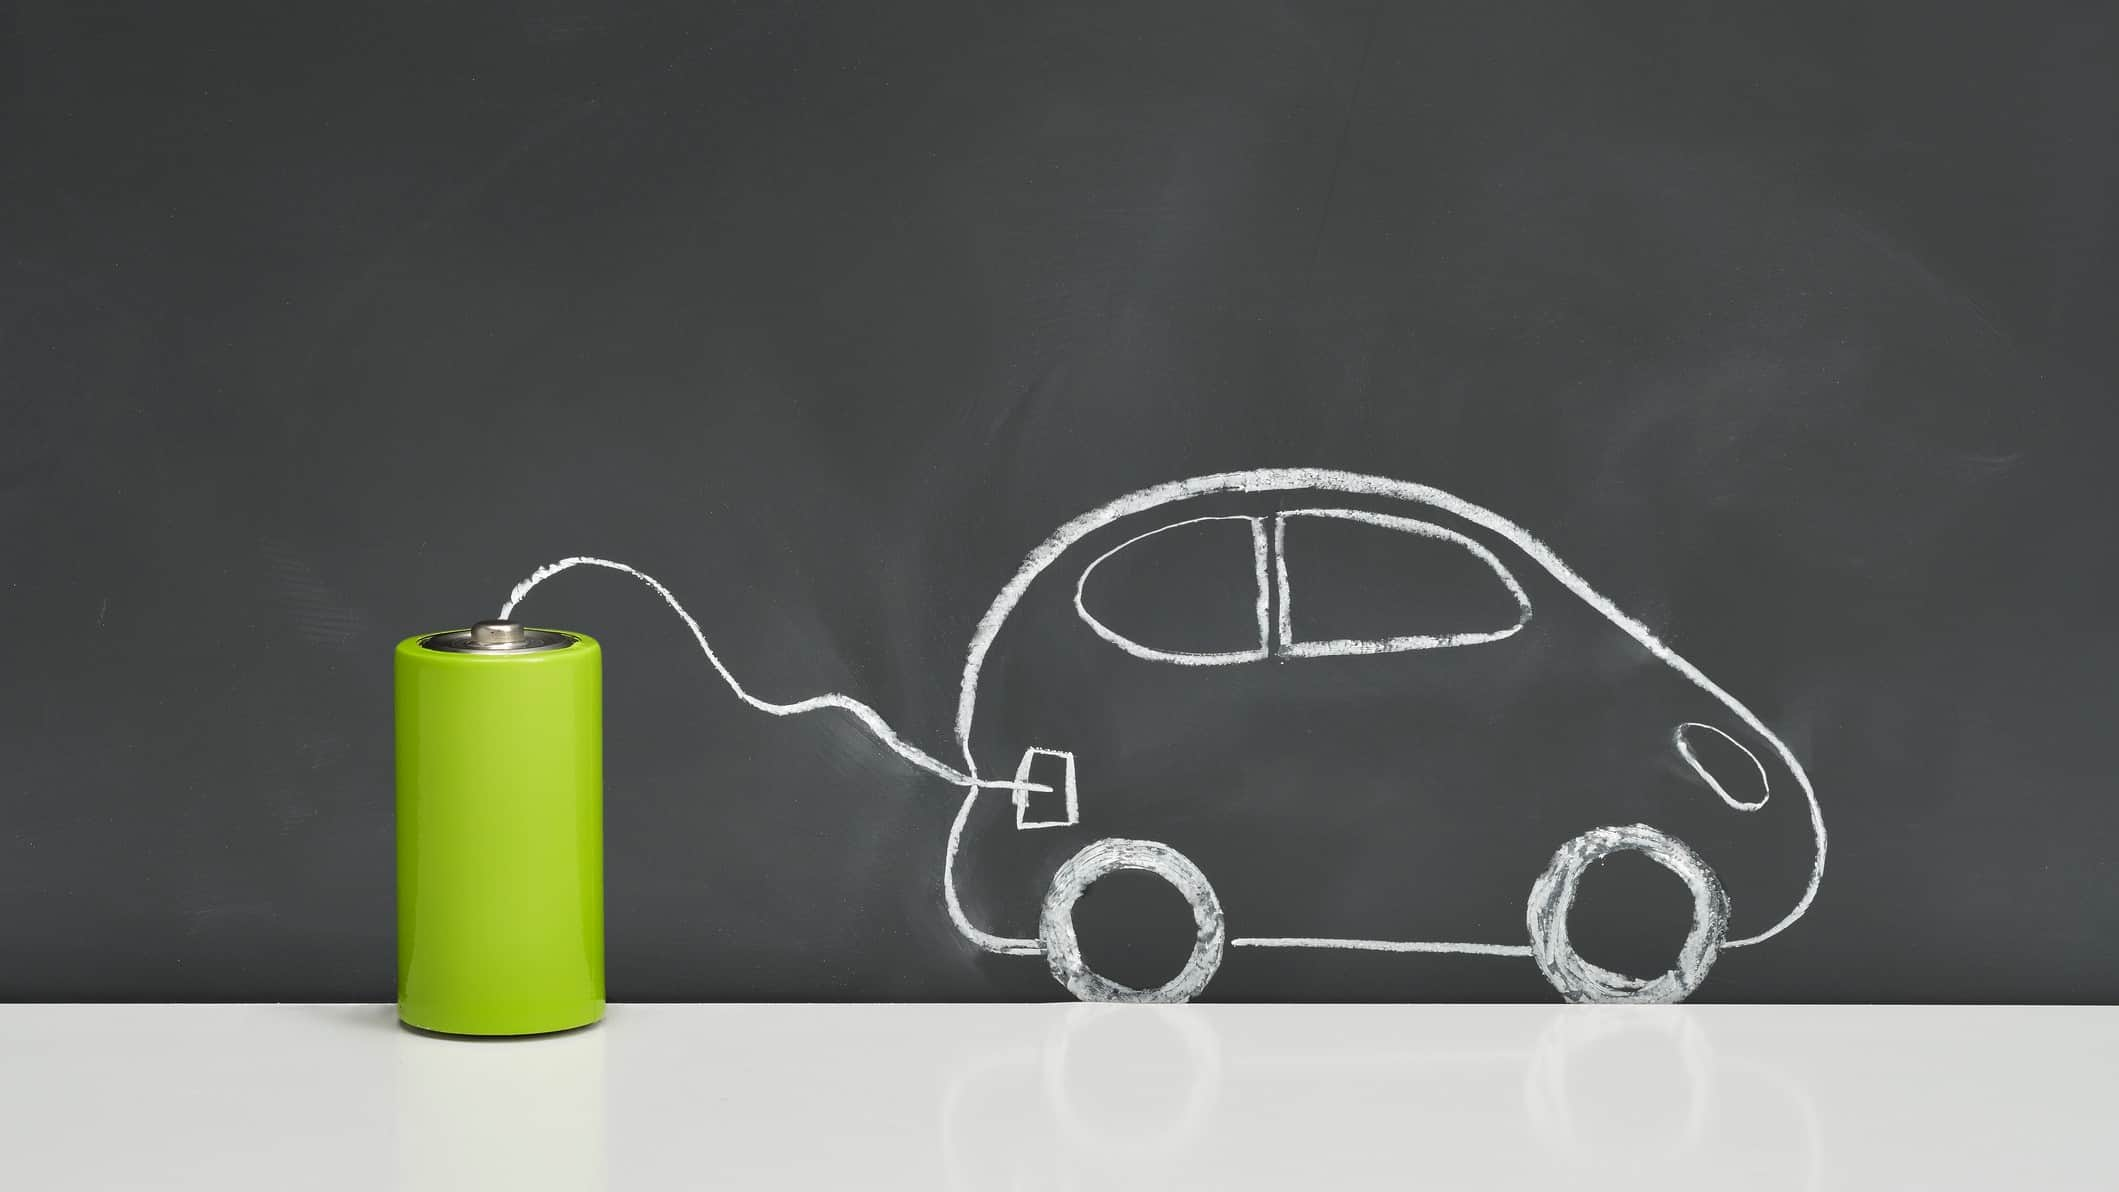 a chalk drawing of a car is connected to a real green battery, signifying clean energy